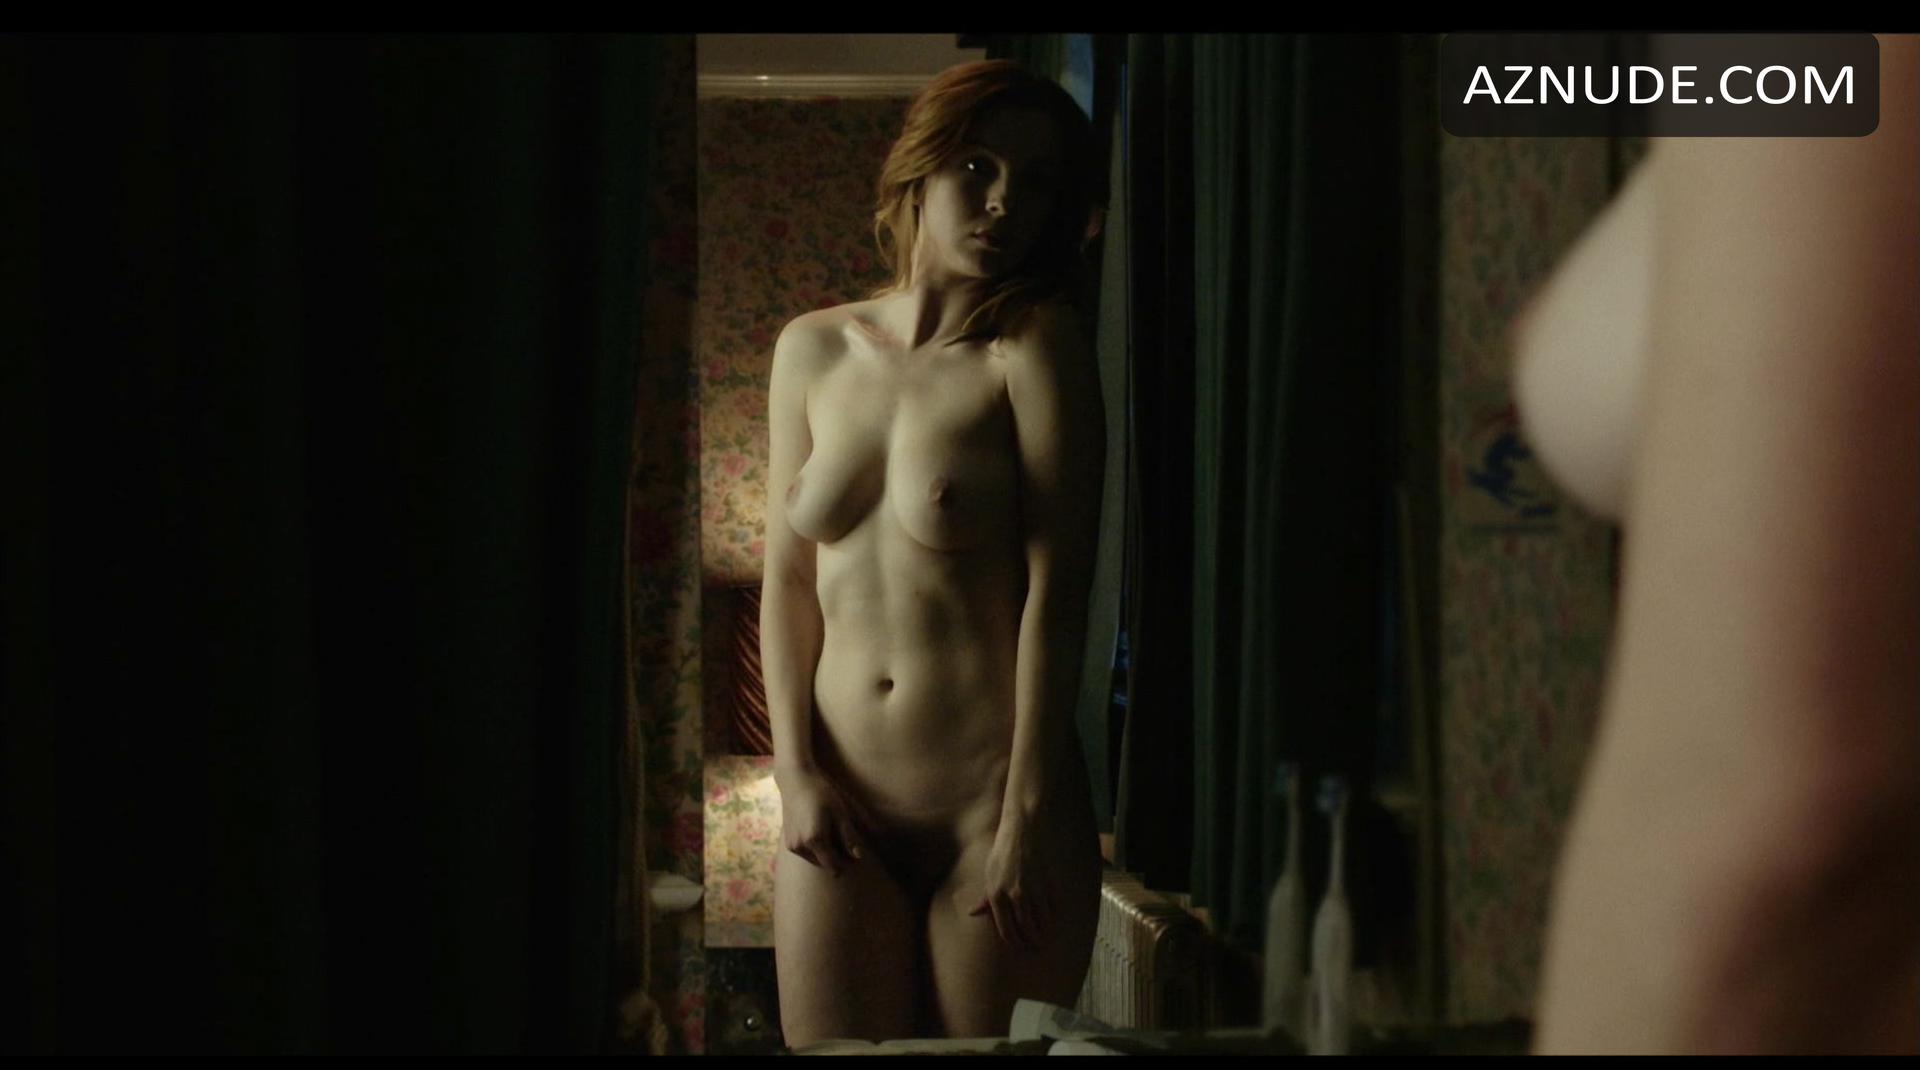 aisling knight nude